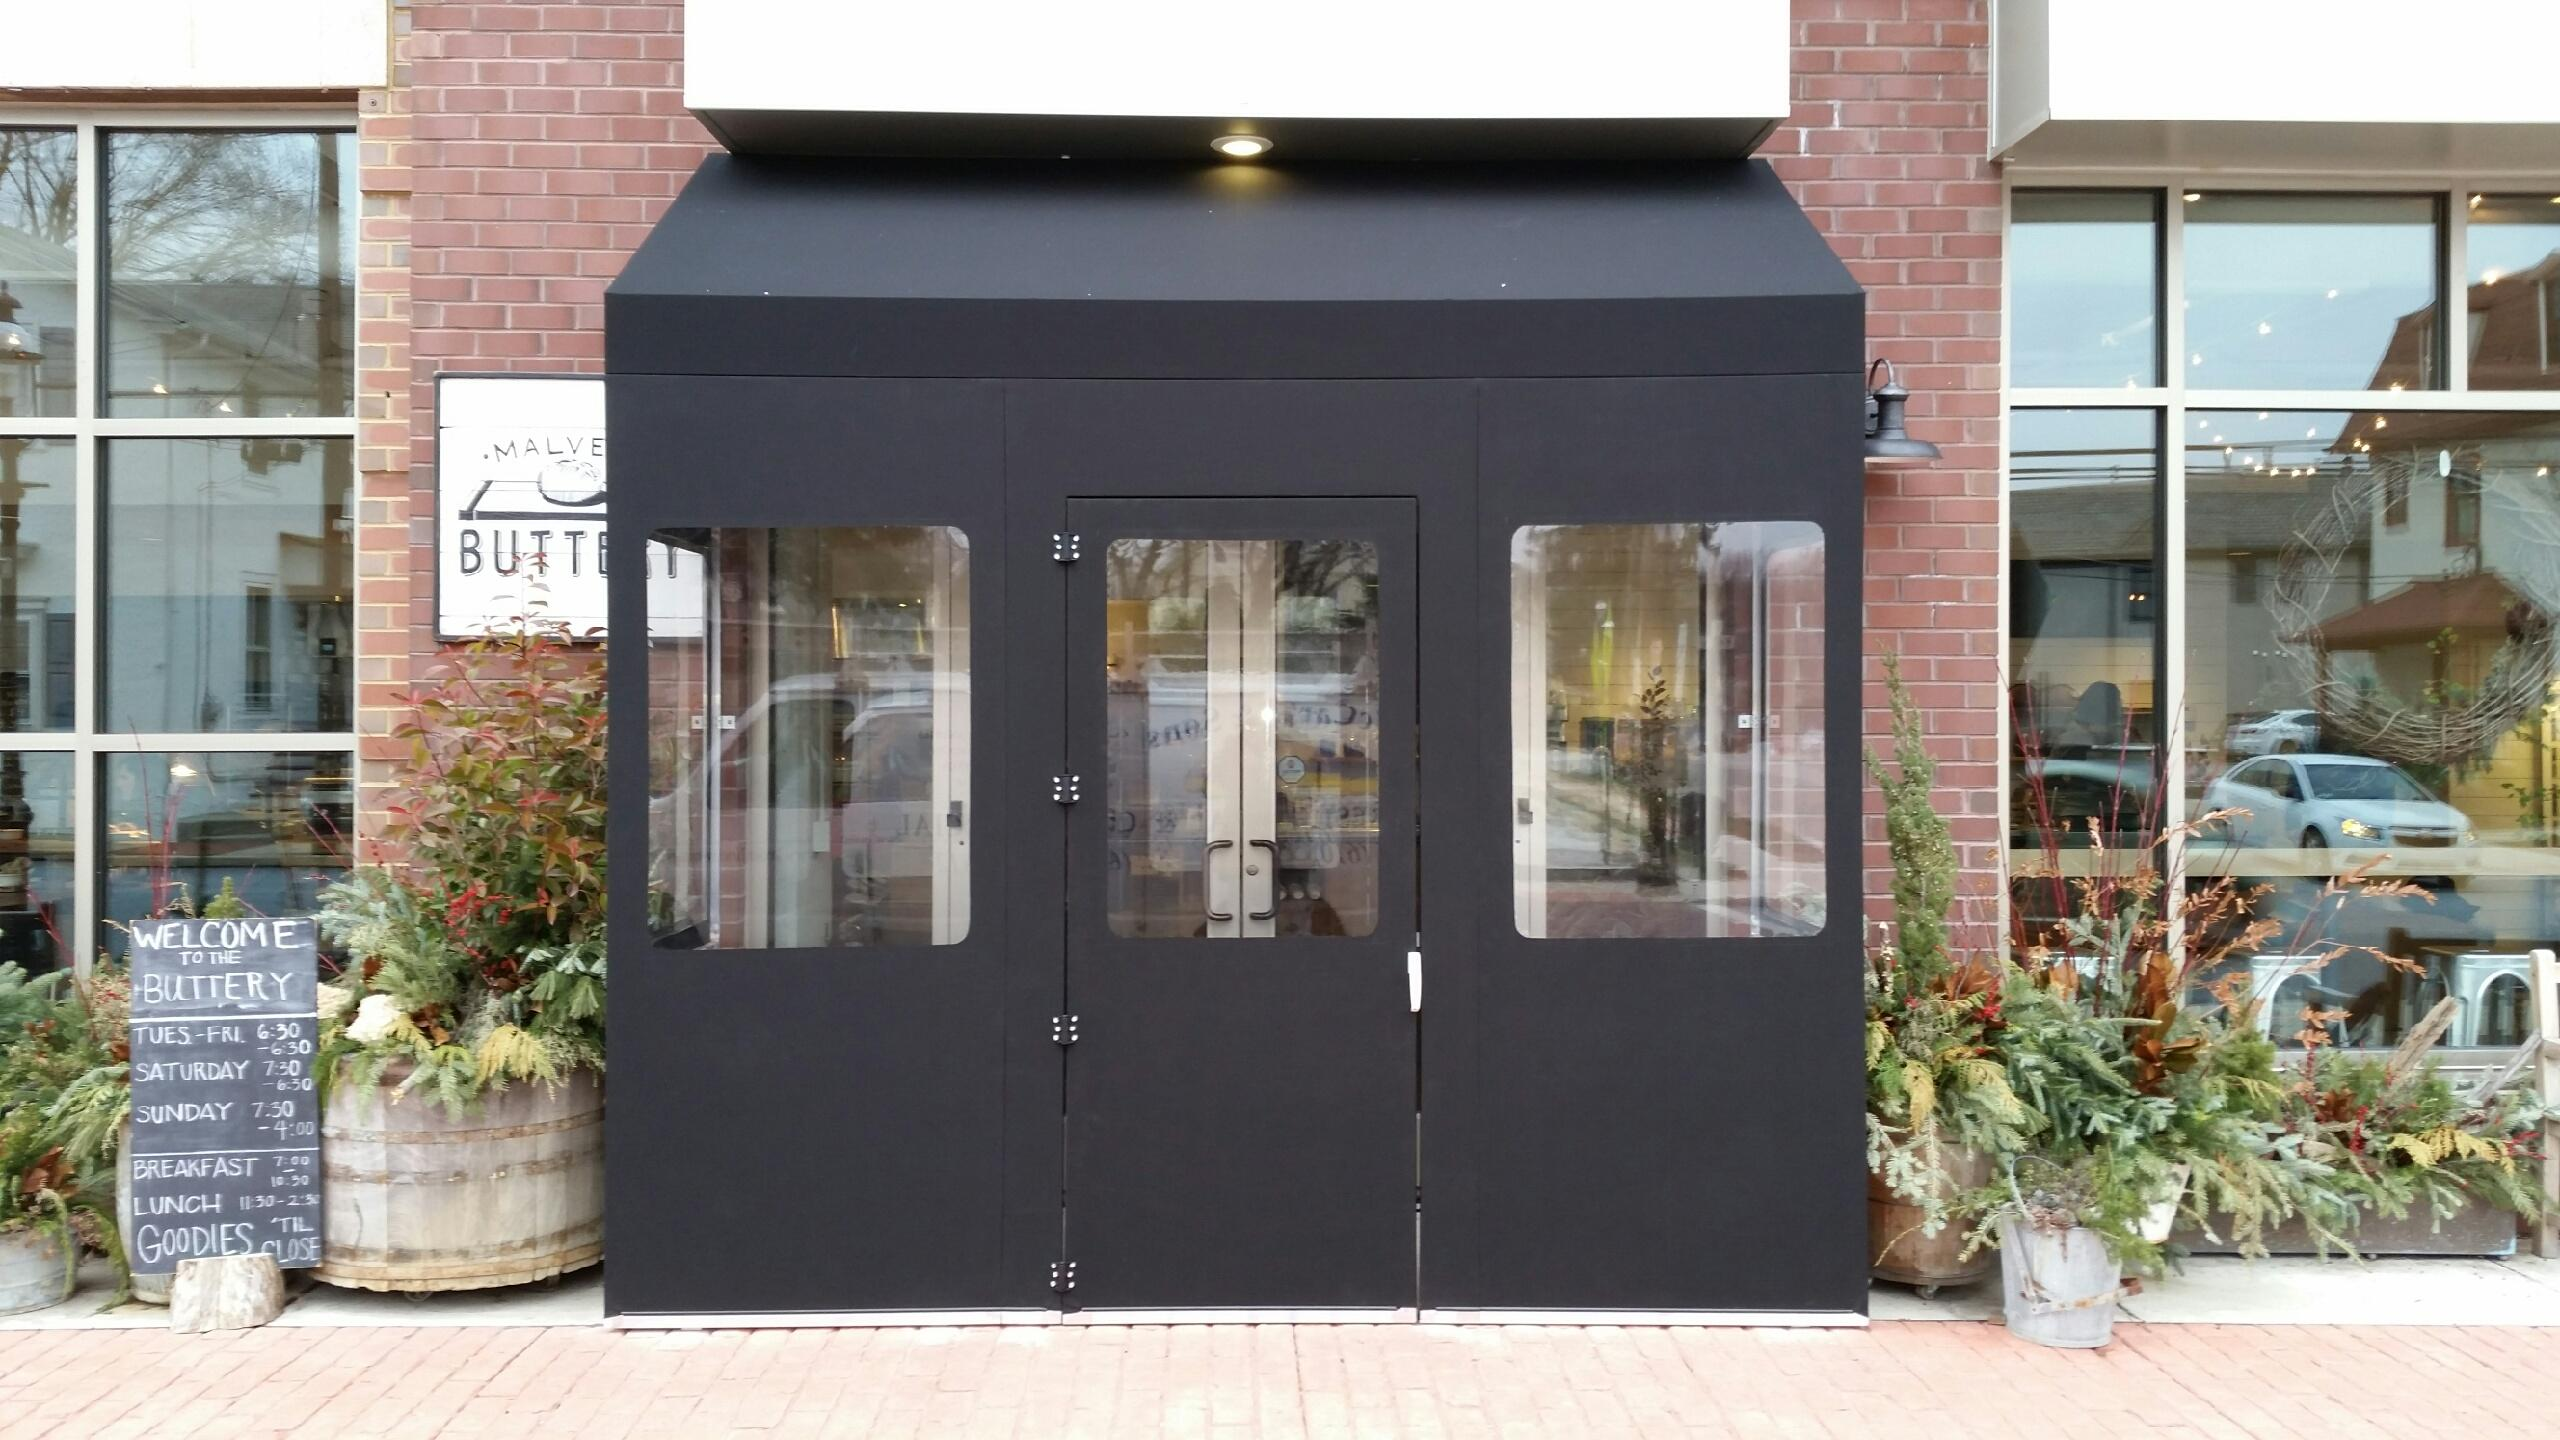 Seasonal removable creative vestibule awnings MacCarty and Sons